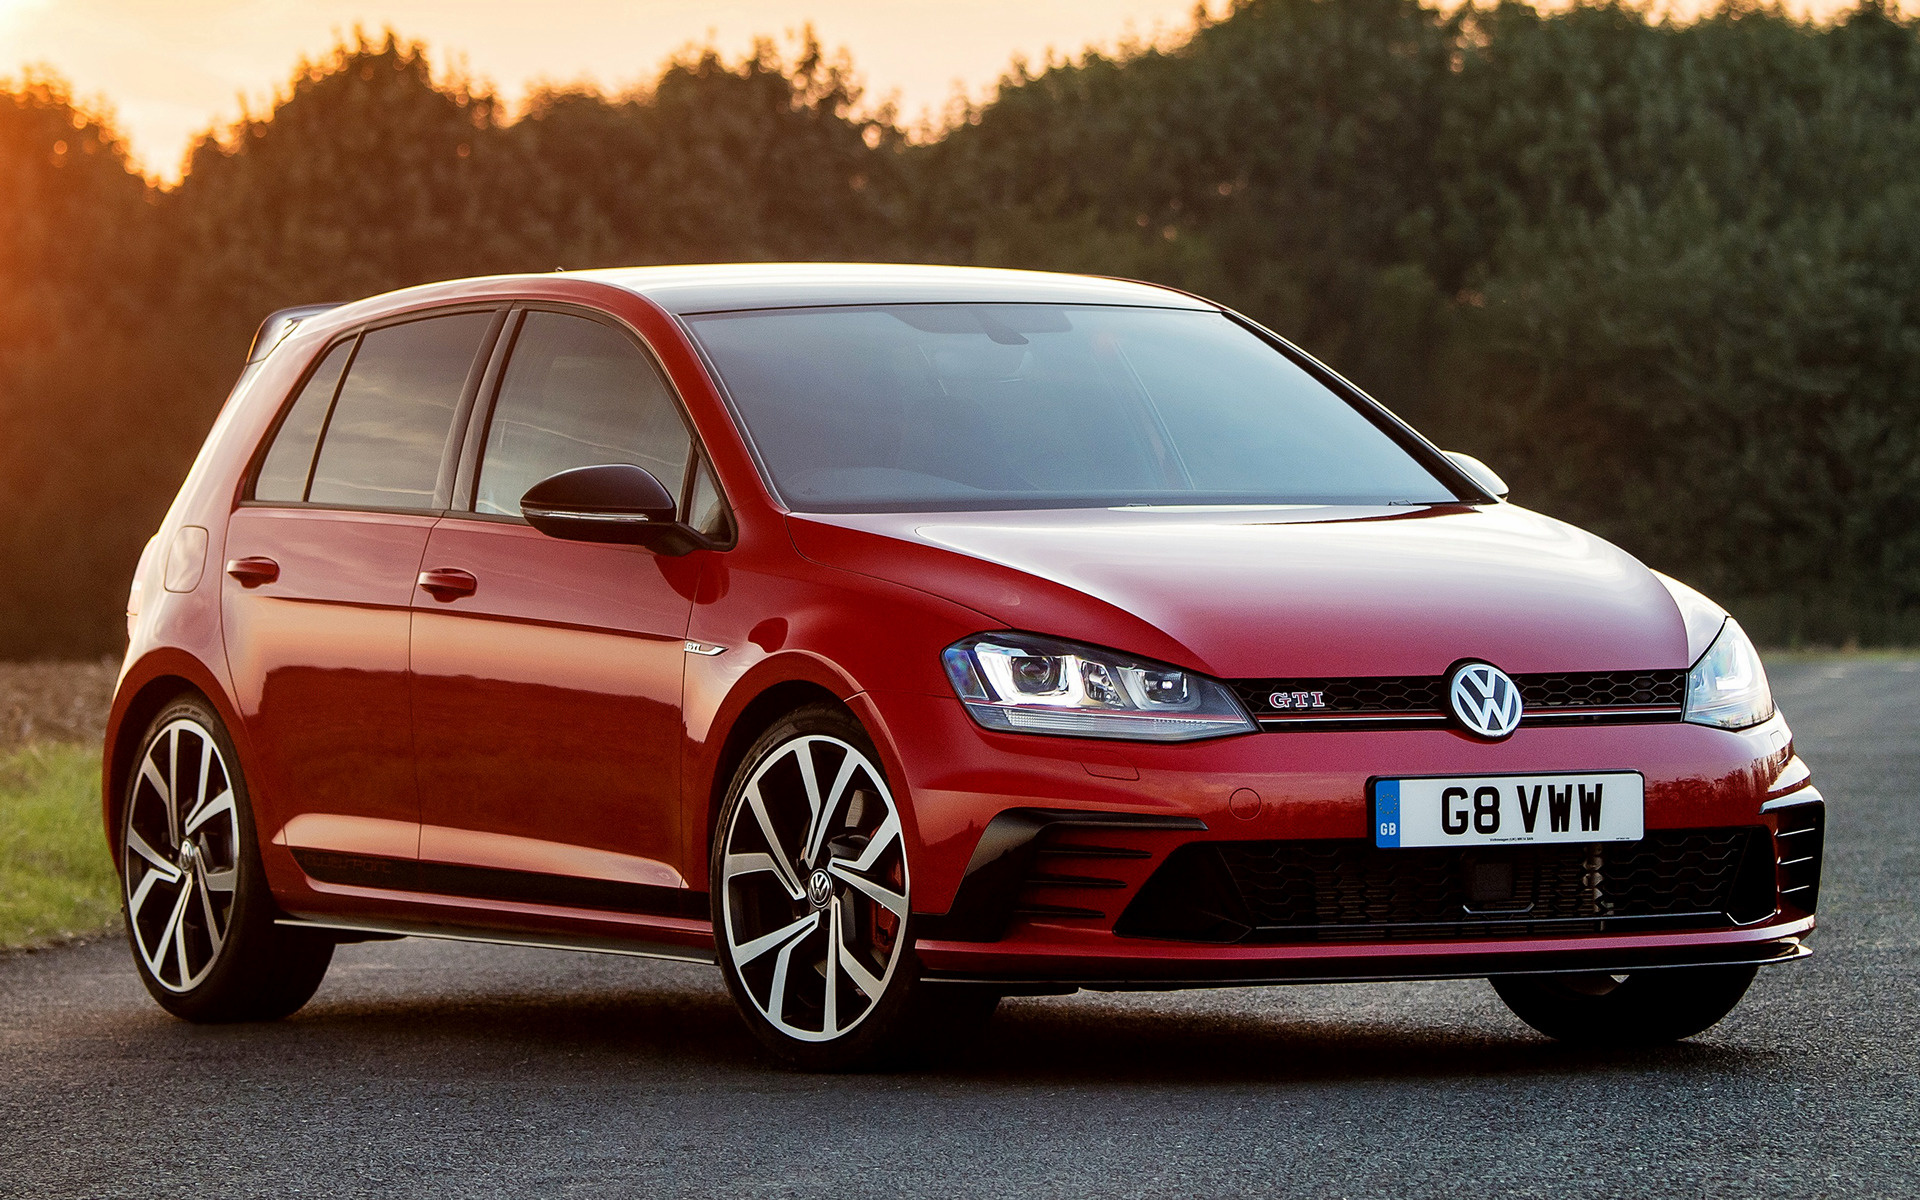 volkswagen golf gti clubsport edition 40 5 door 2016 uk wallpapers and hd images car pixel. Black Bedroom Furniture Sets. Home Design Ideas